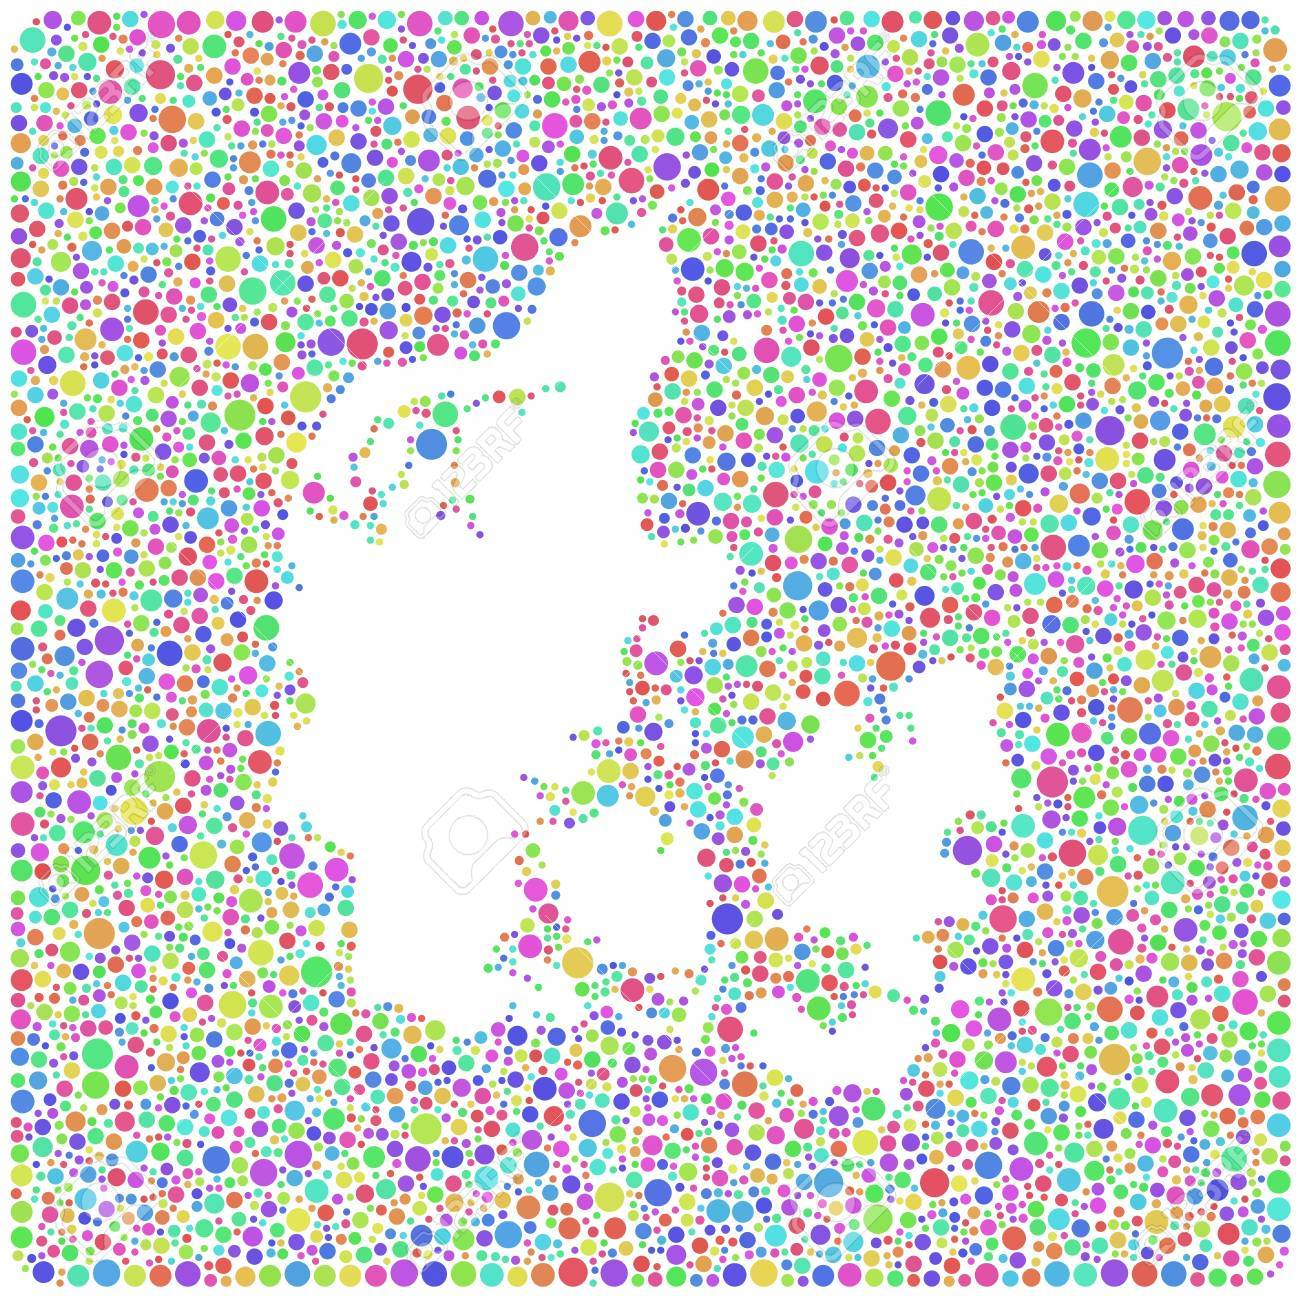 Map Of Kingdom Of Denmark Europe In A Mosaic Of Harlequin Circles ...